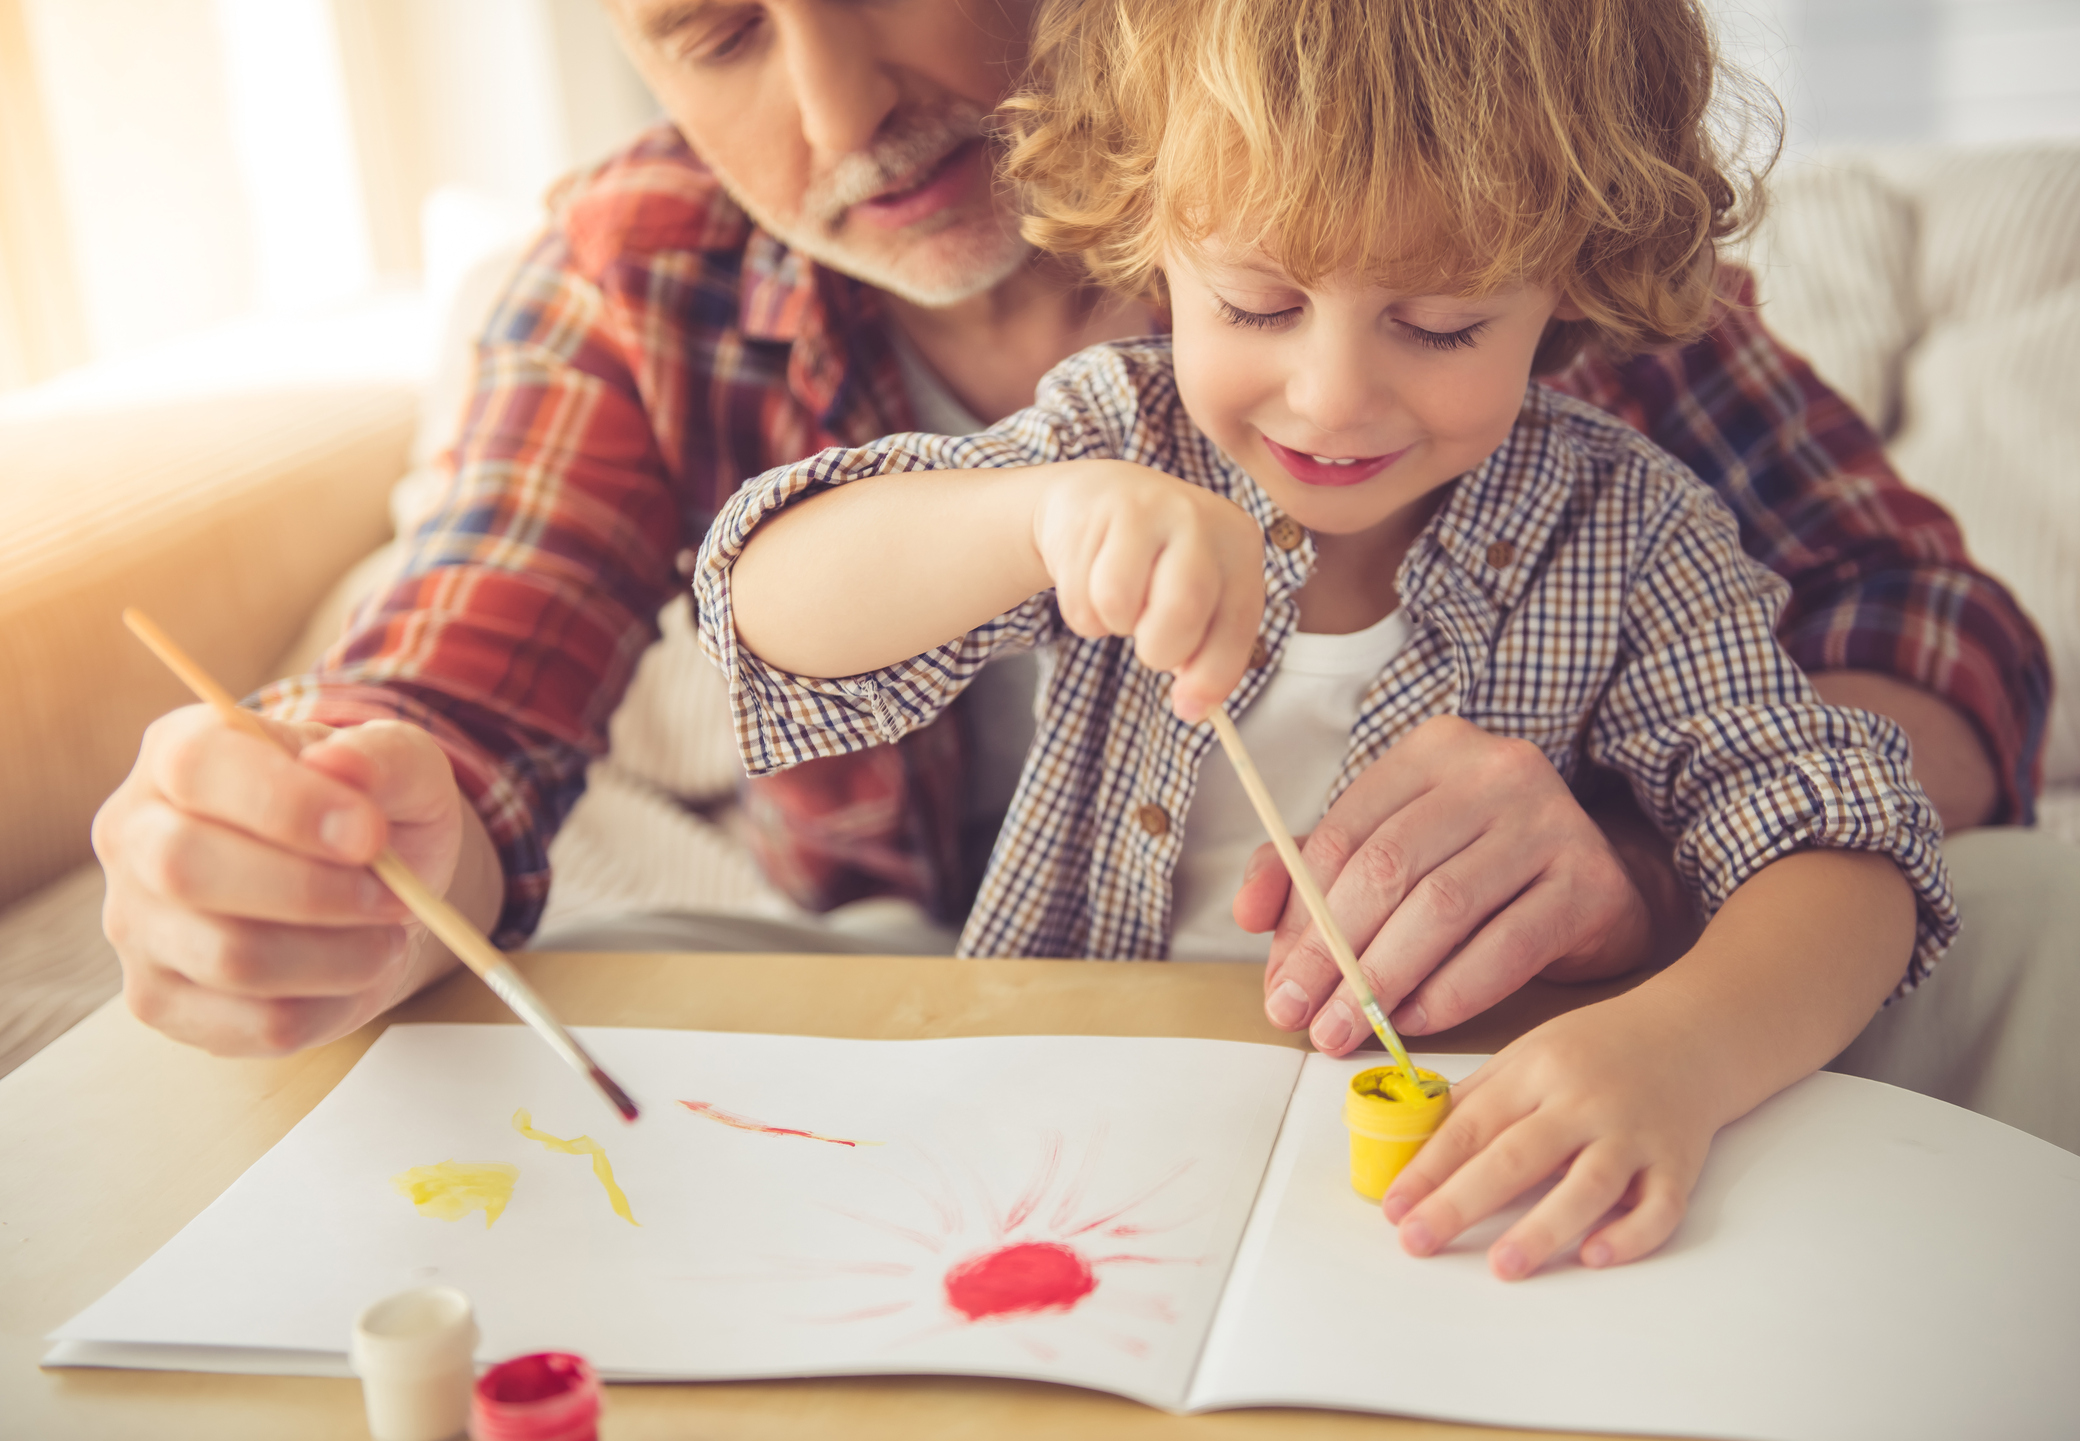 A grandad helps his grandson do some painting (Thinkstock/PA)